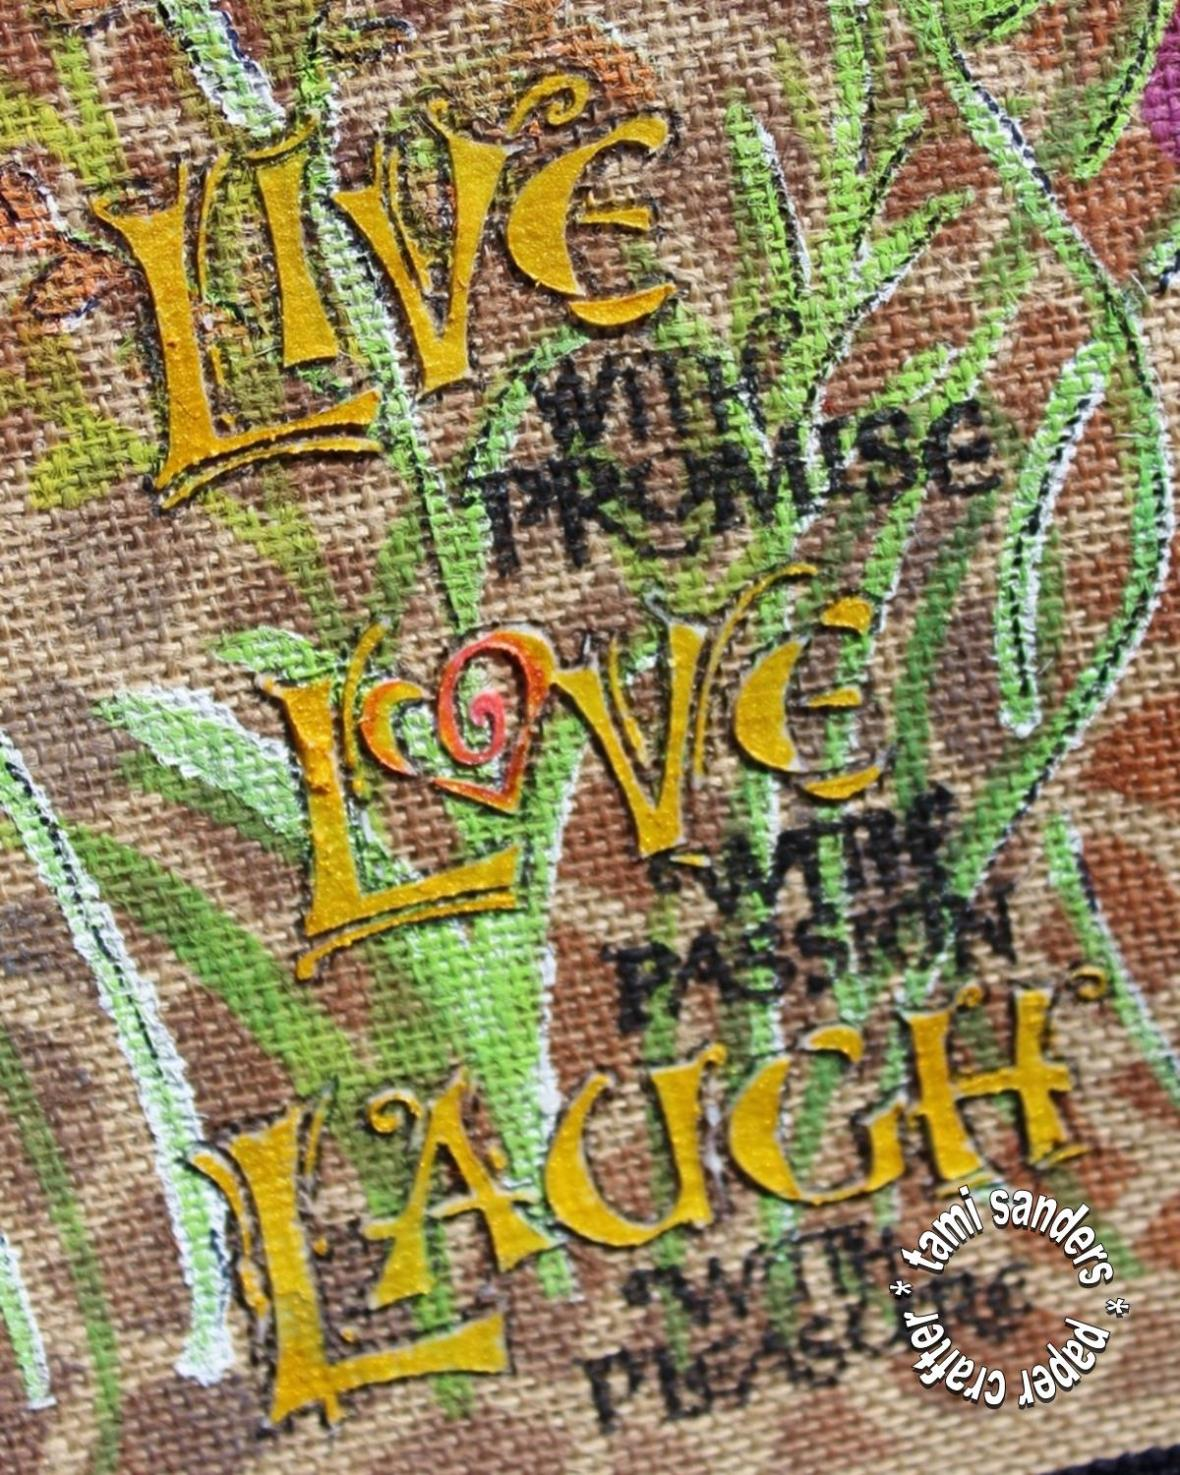 live love laugh wallhanging - tcw,the crafter's workshop,home decor,burlap decor,garden, flowers, inked stencil,vera style,tami sanders -2 shwm